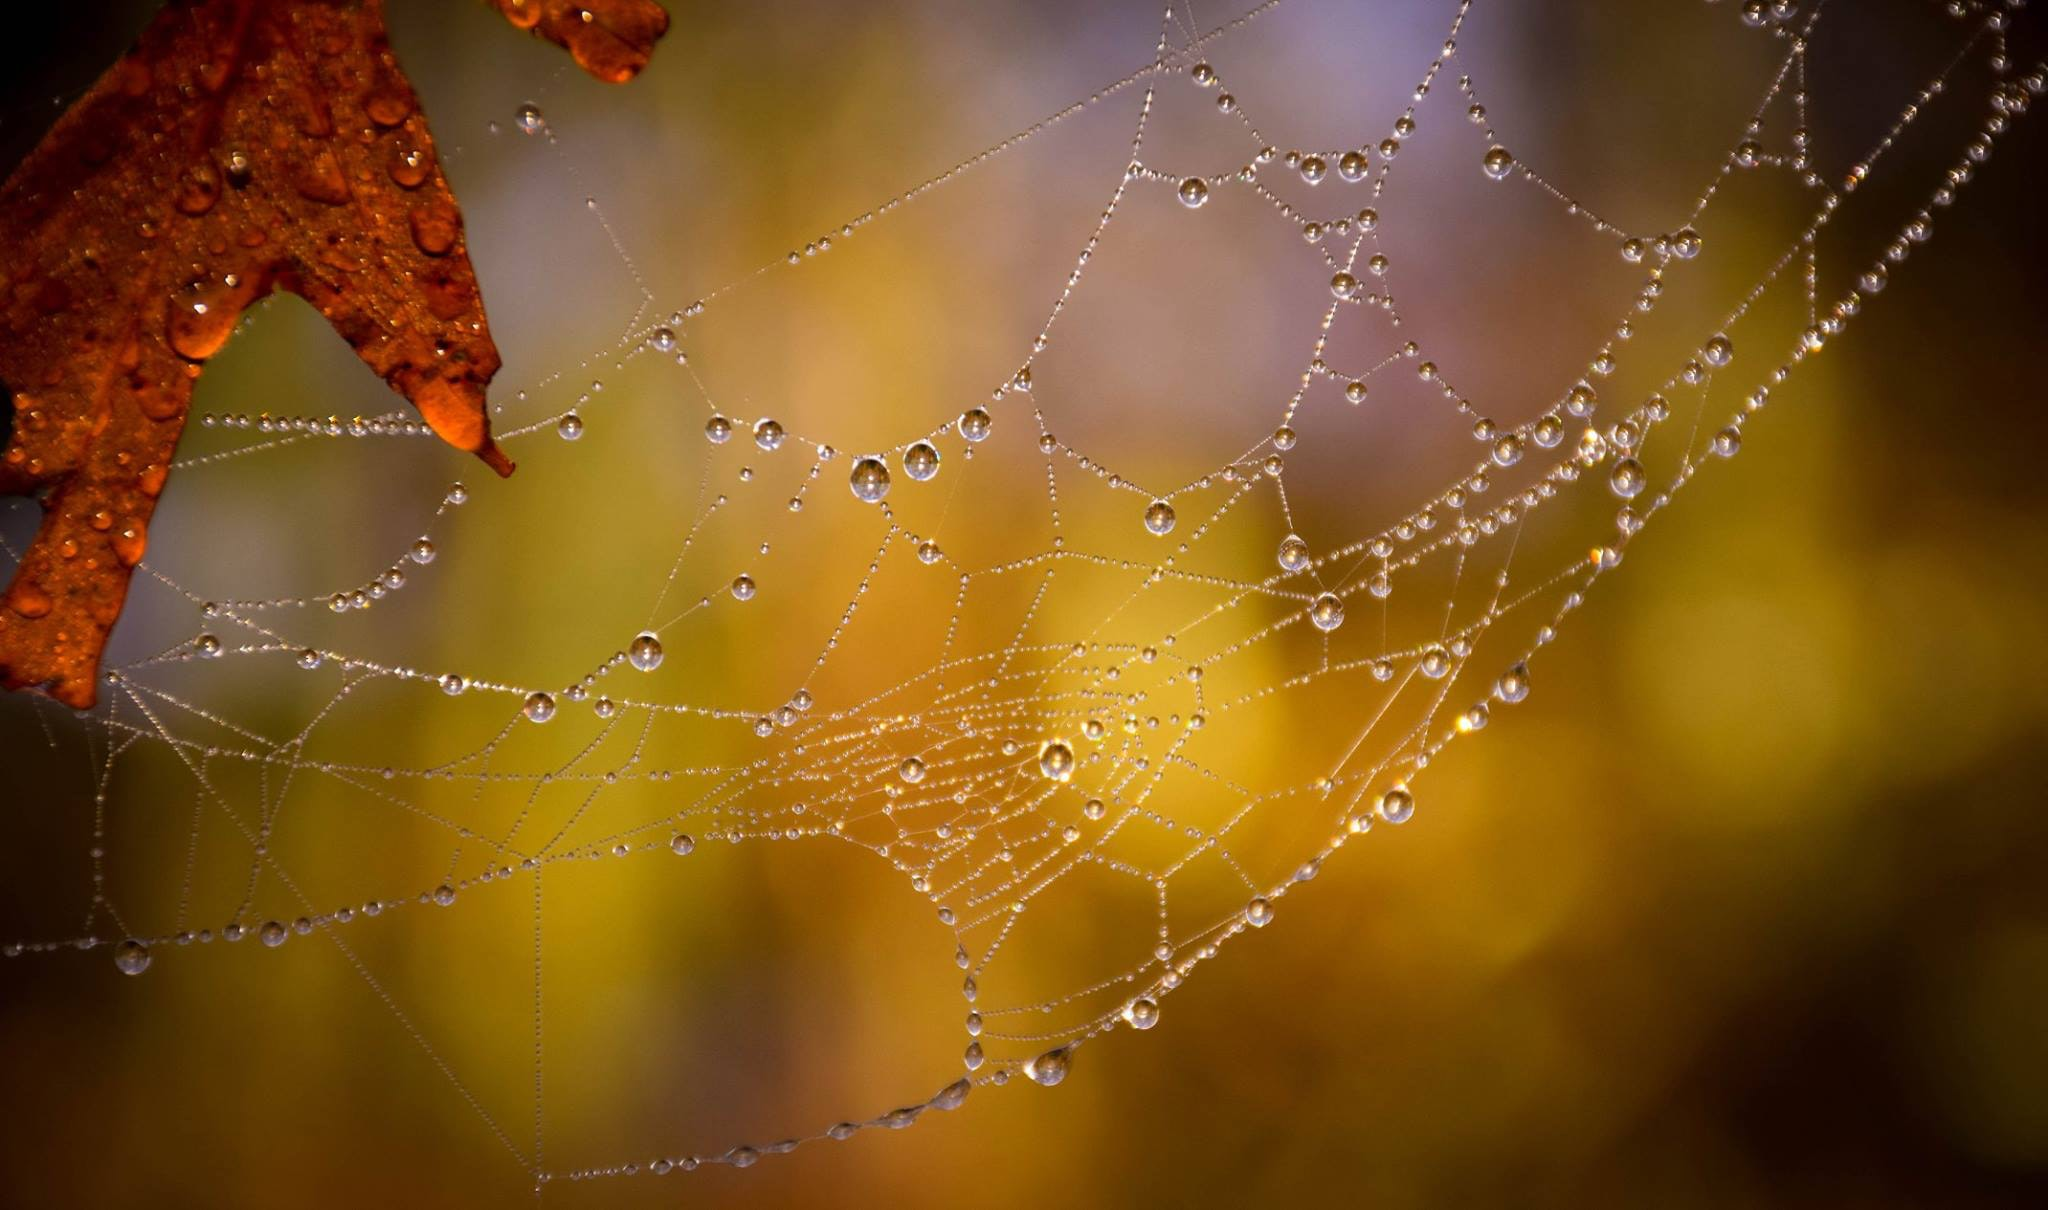 selective focused photo of a spider web with water drops